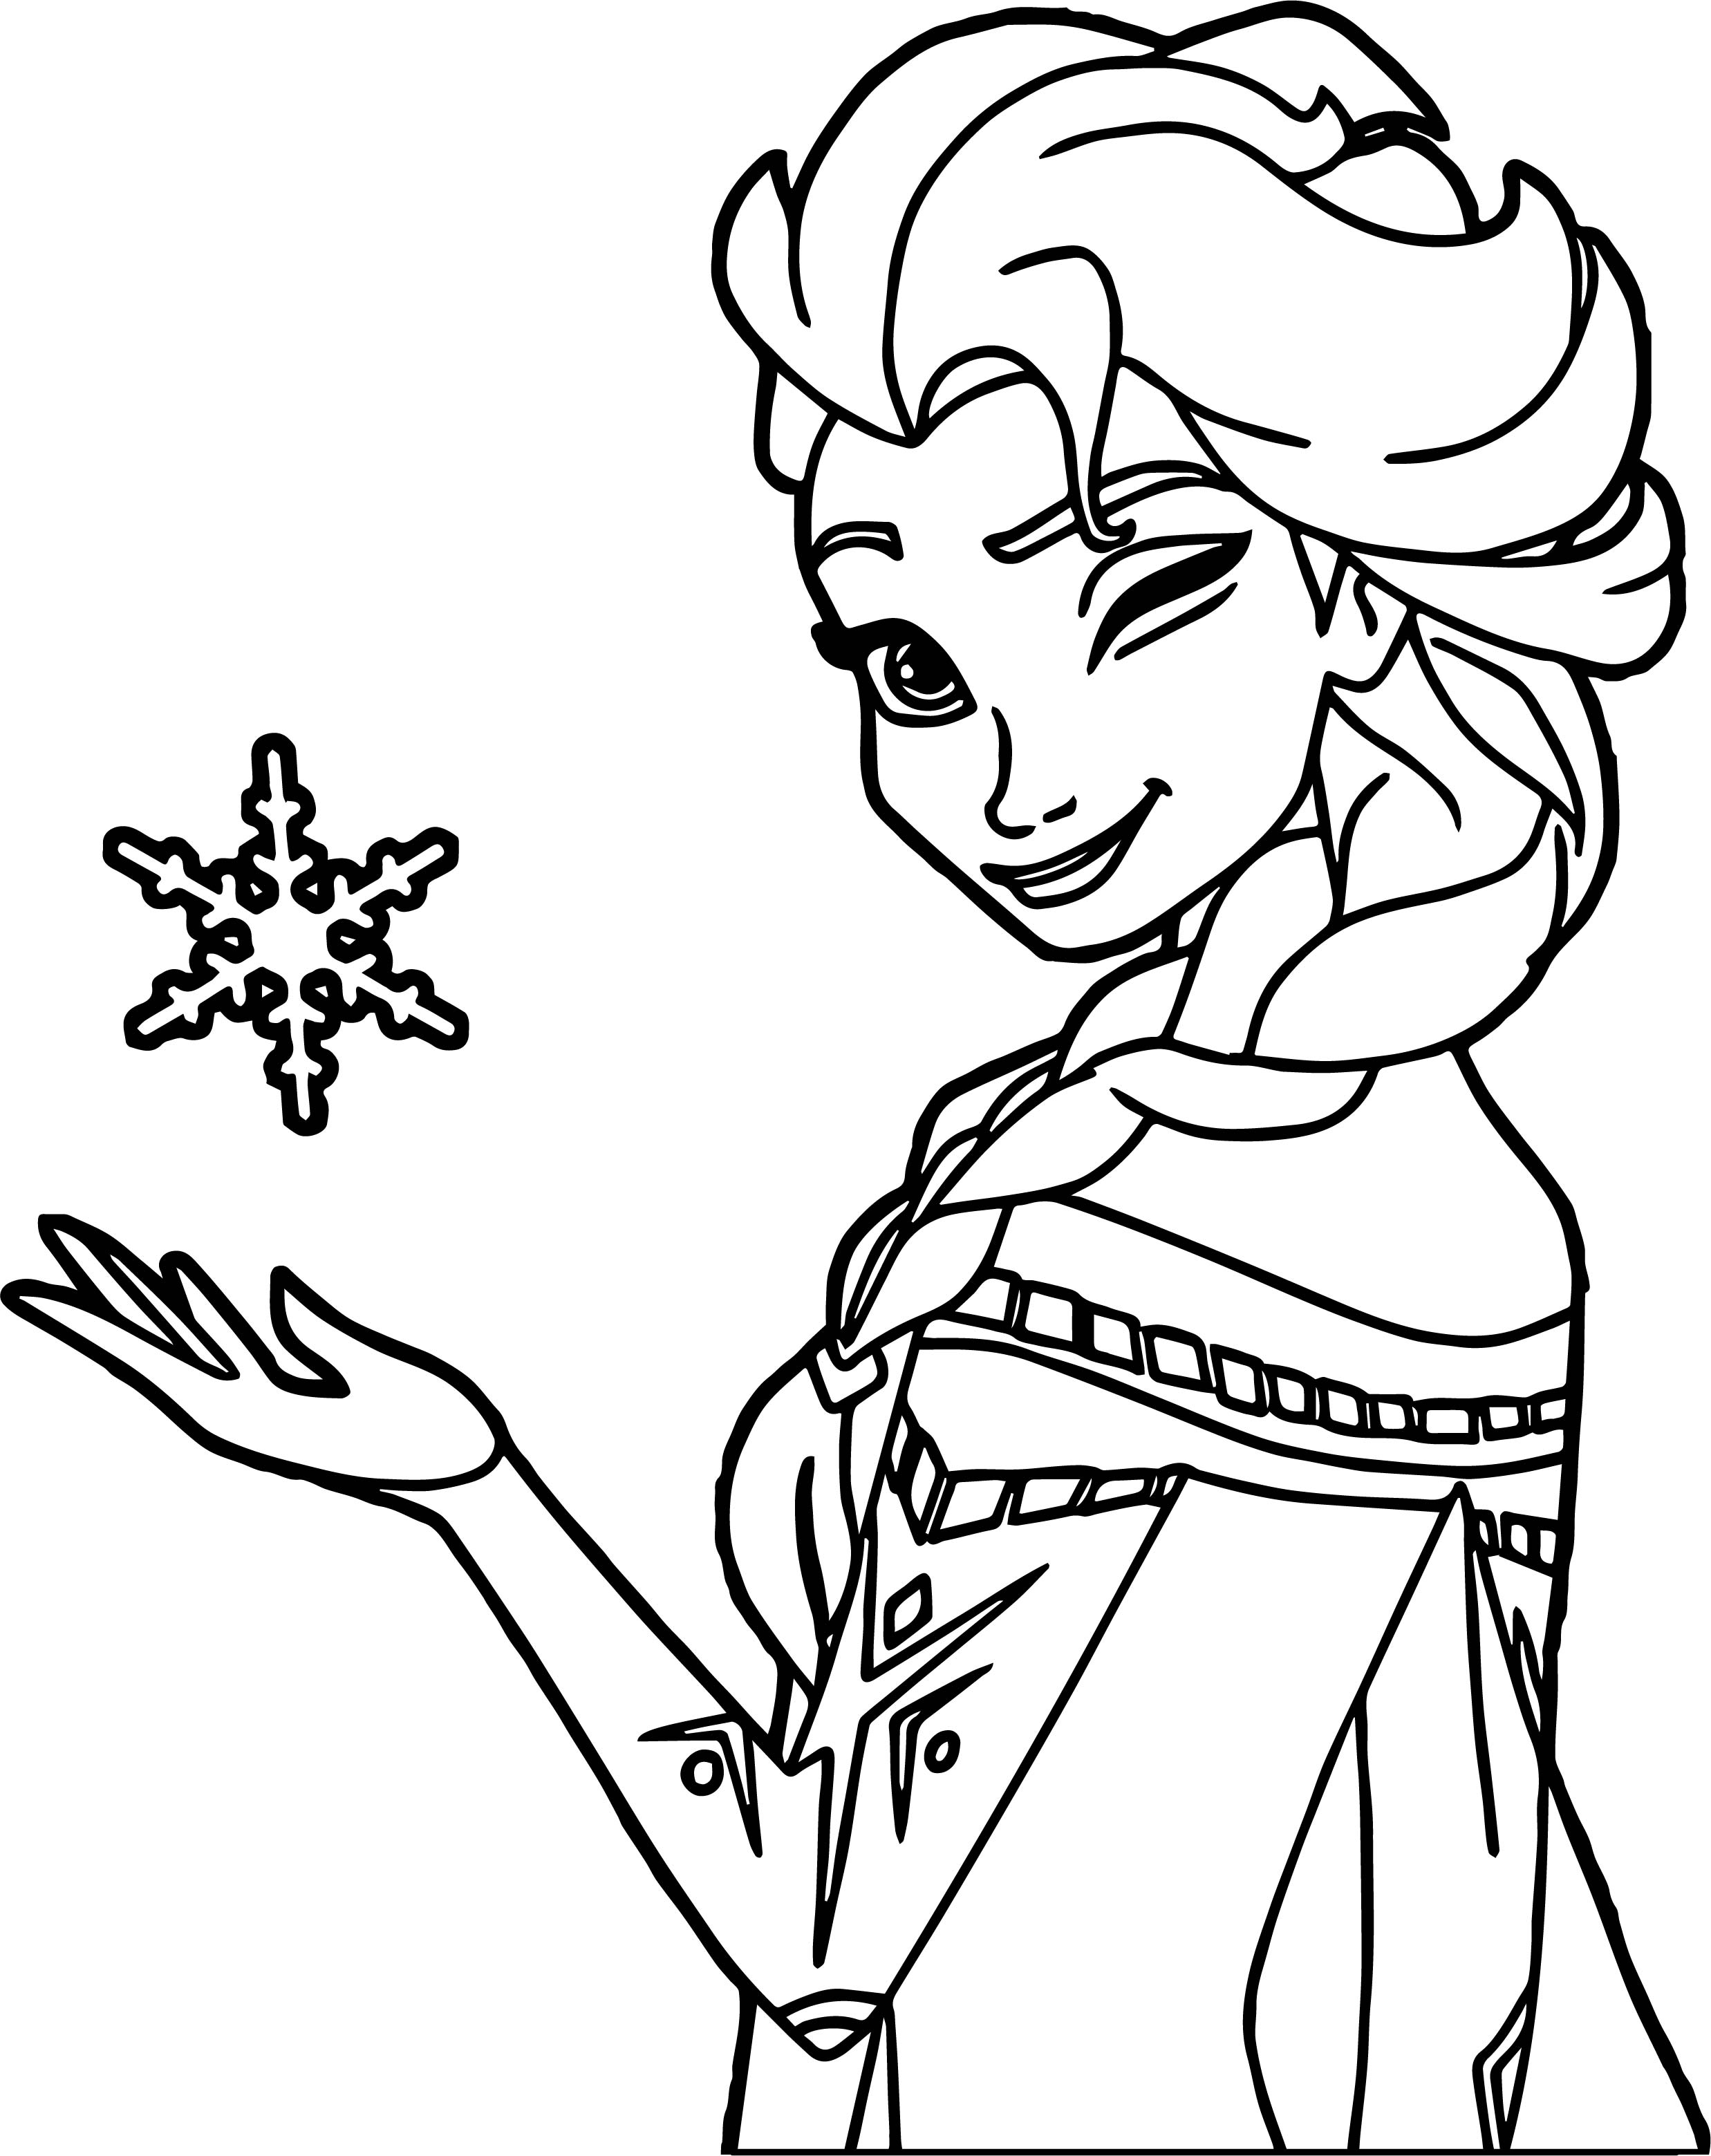 Coloring Book Pages Elsa Frozen Coloring Pages S Grig3 Org